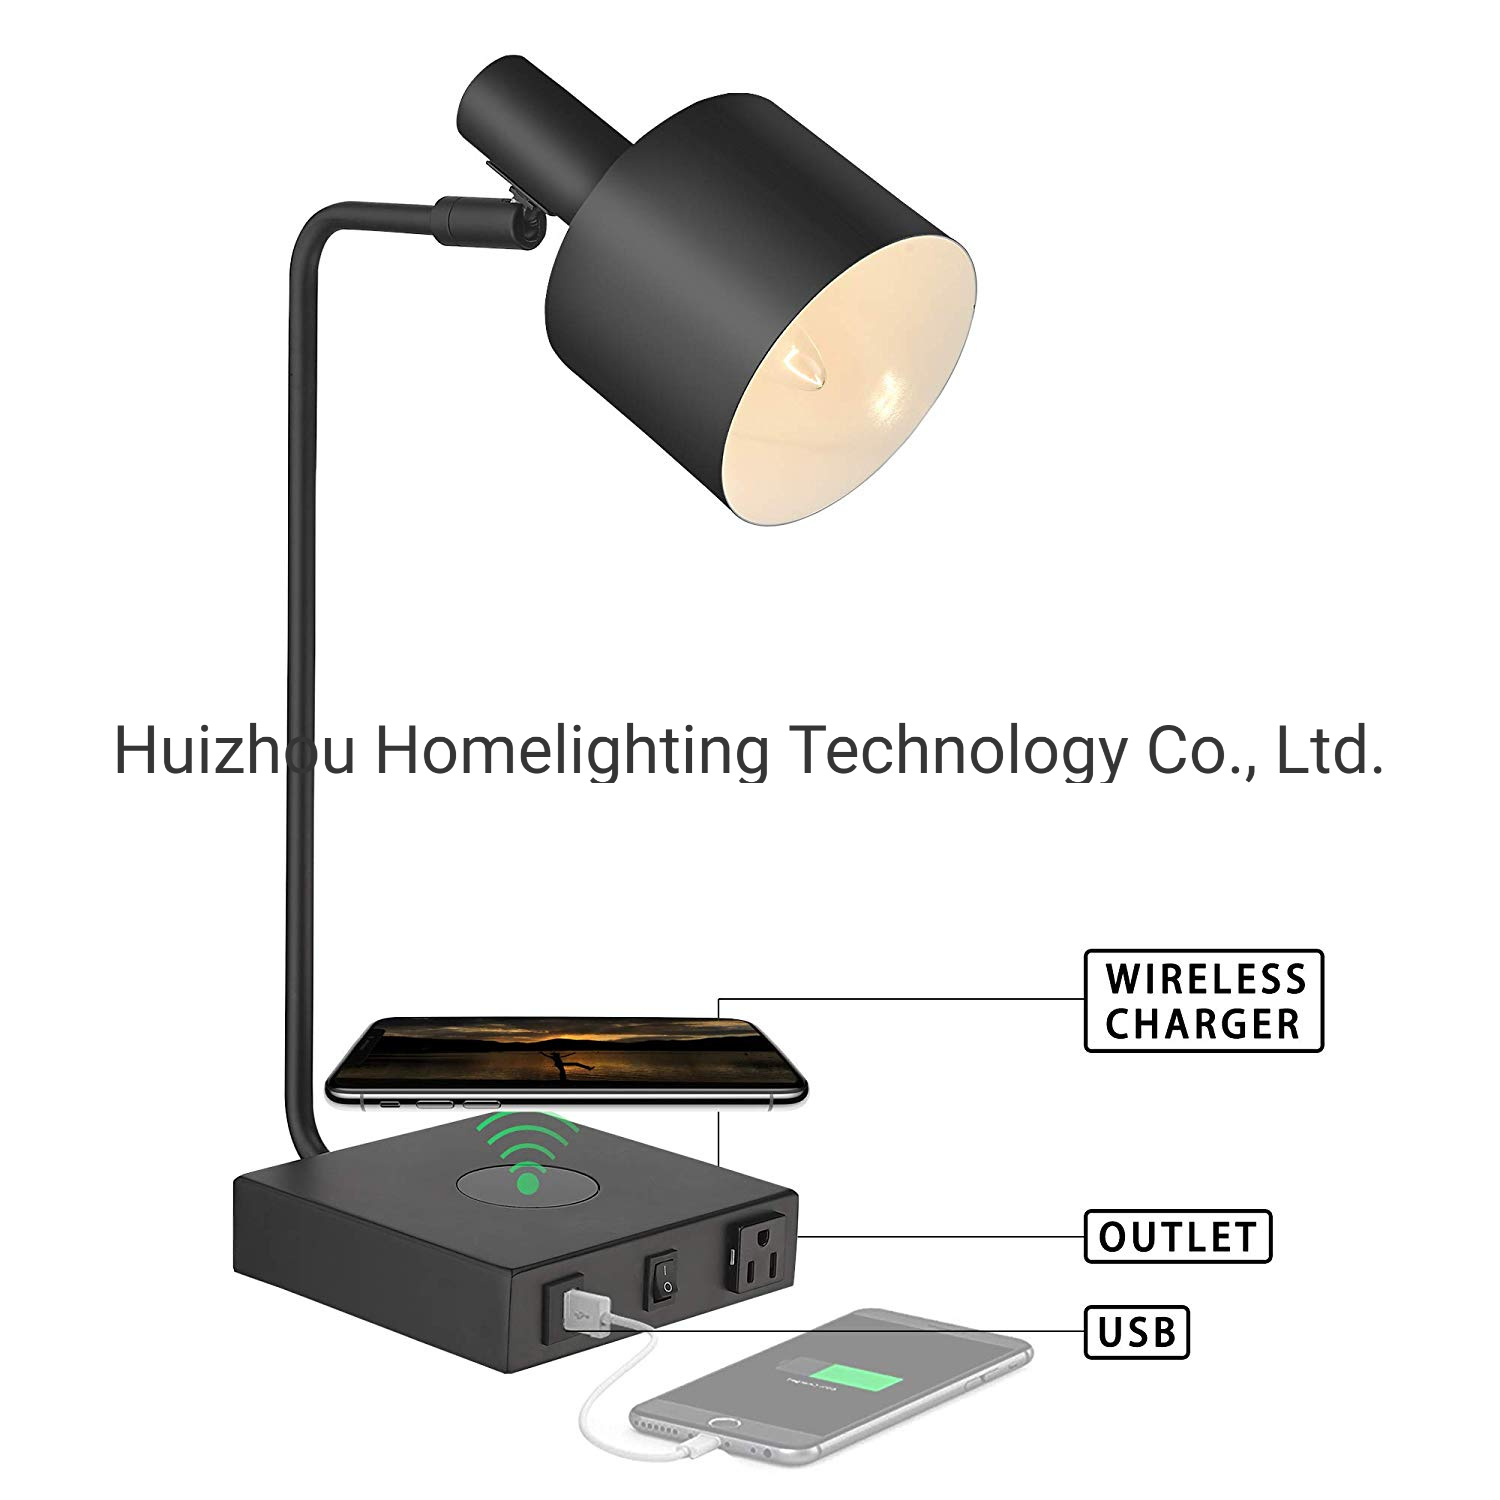 Hot Item Jlt 9302 Matte Black Multi Function Iron Nightstand Table Lamp With Wireless Charger And Usb Charging Port Outlet